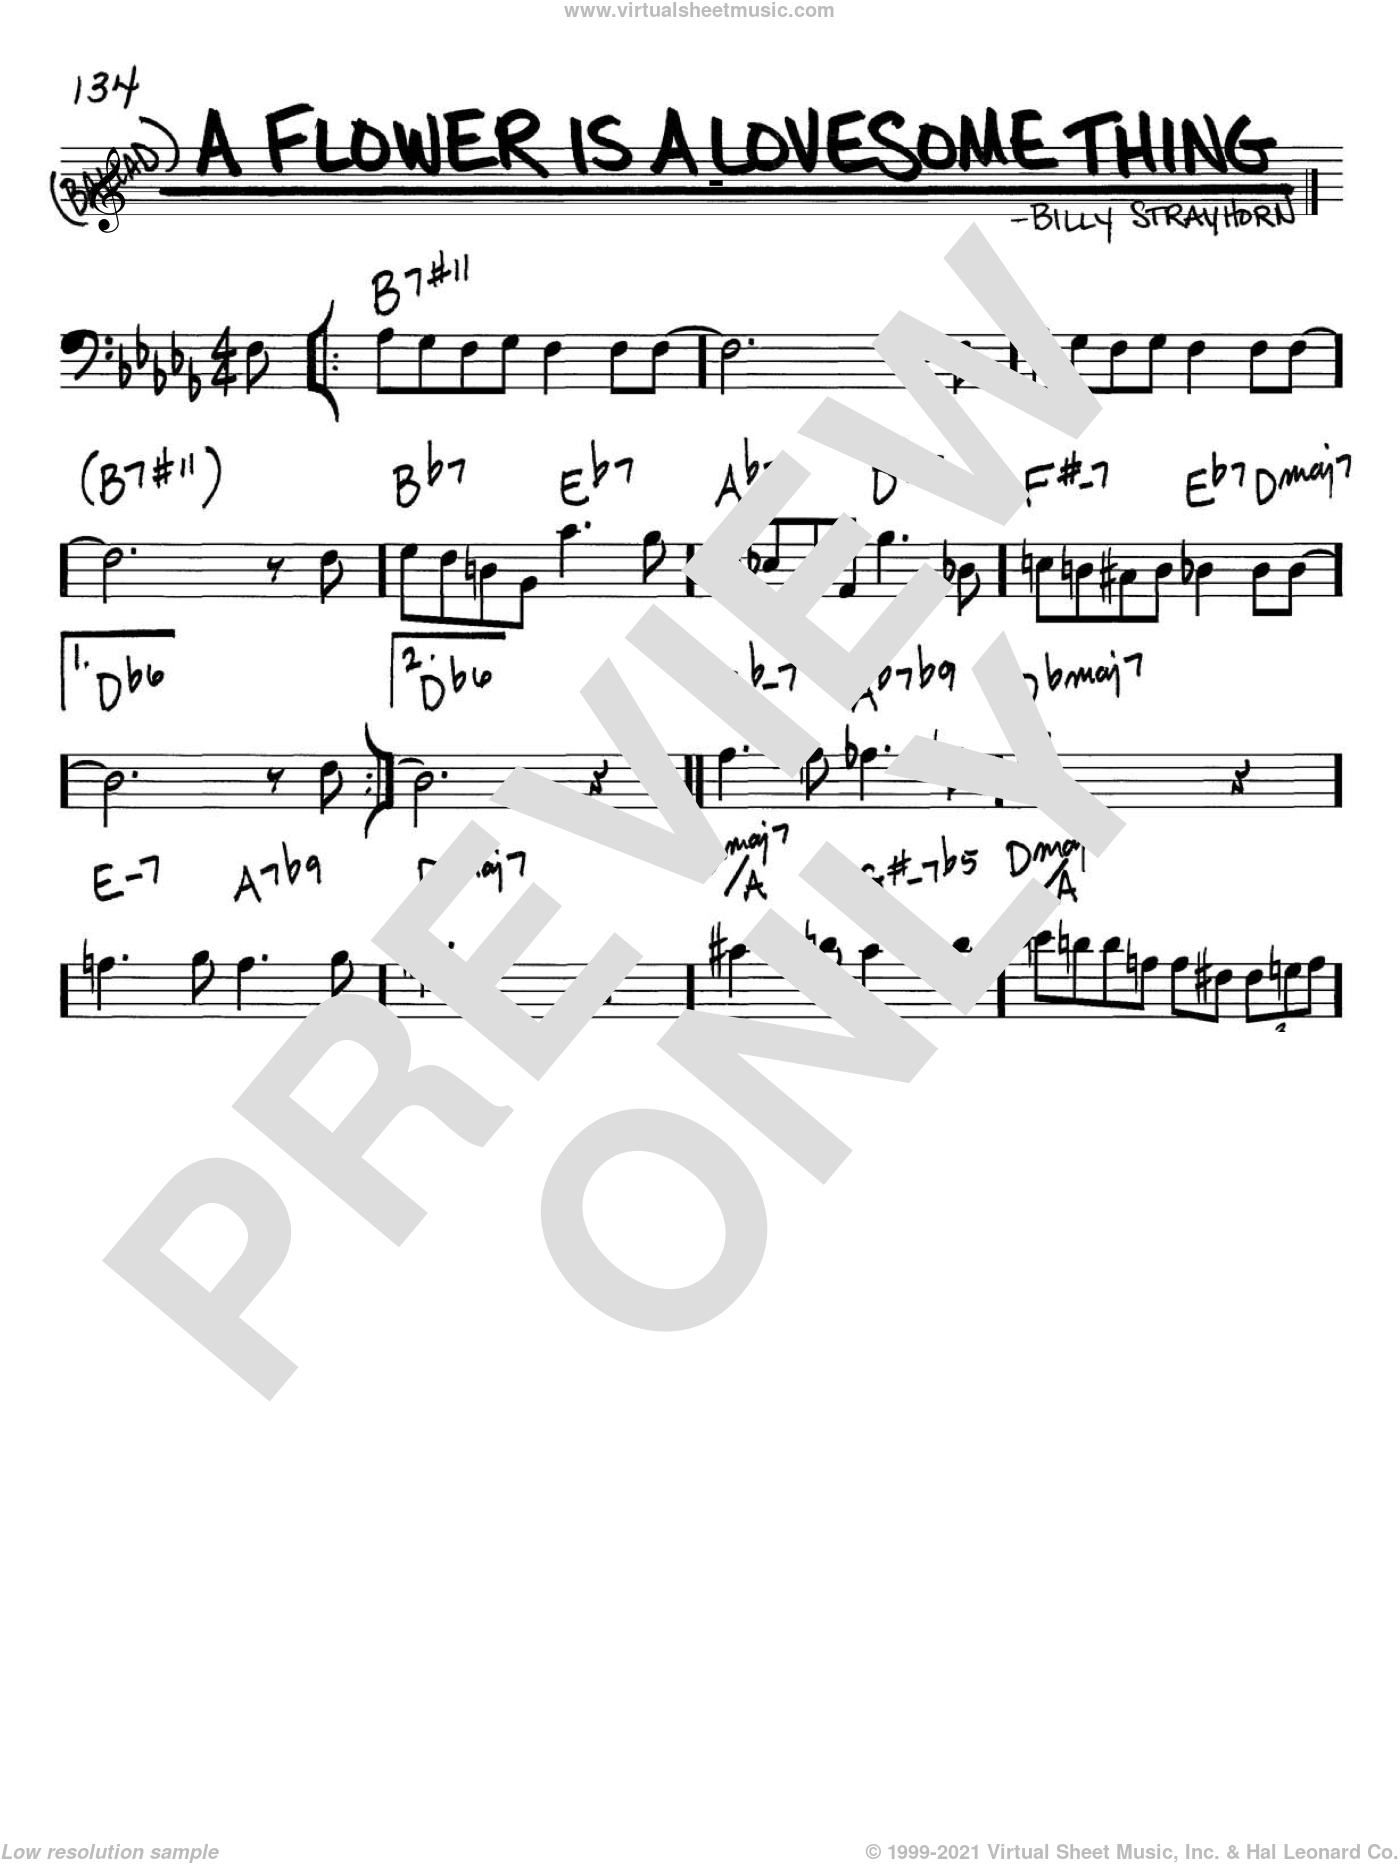 A Flower Is A Lovesome Thing sheet music for voice and other instruments (bass clef) by Billy Strayhorn, intermediate skill level